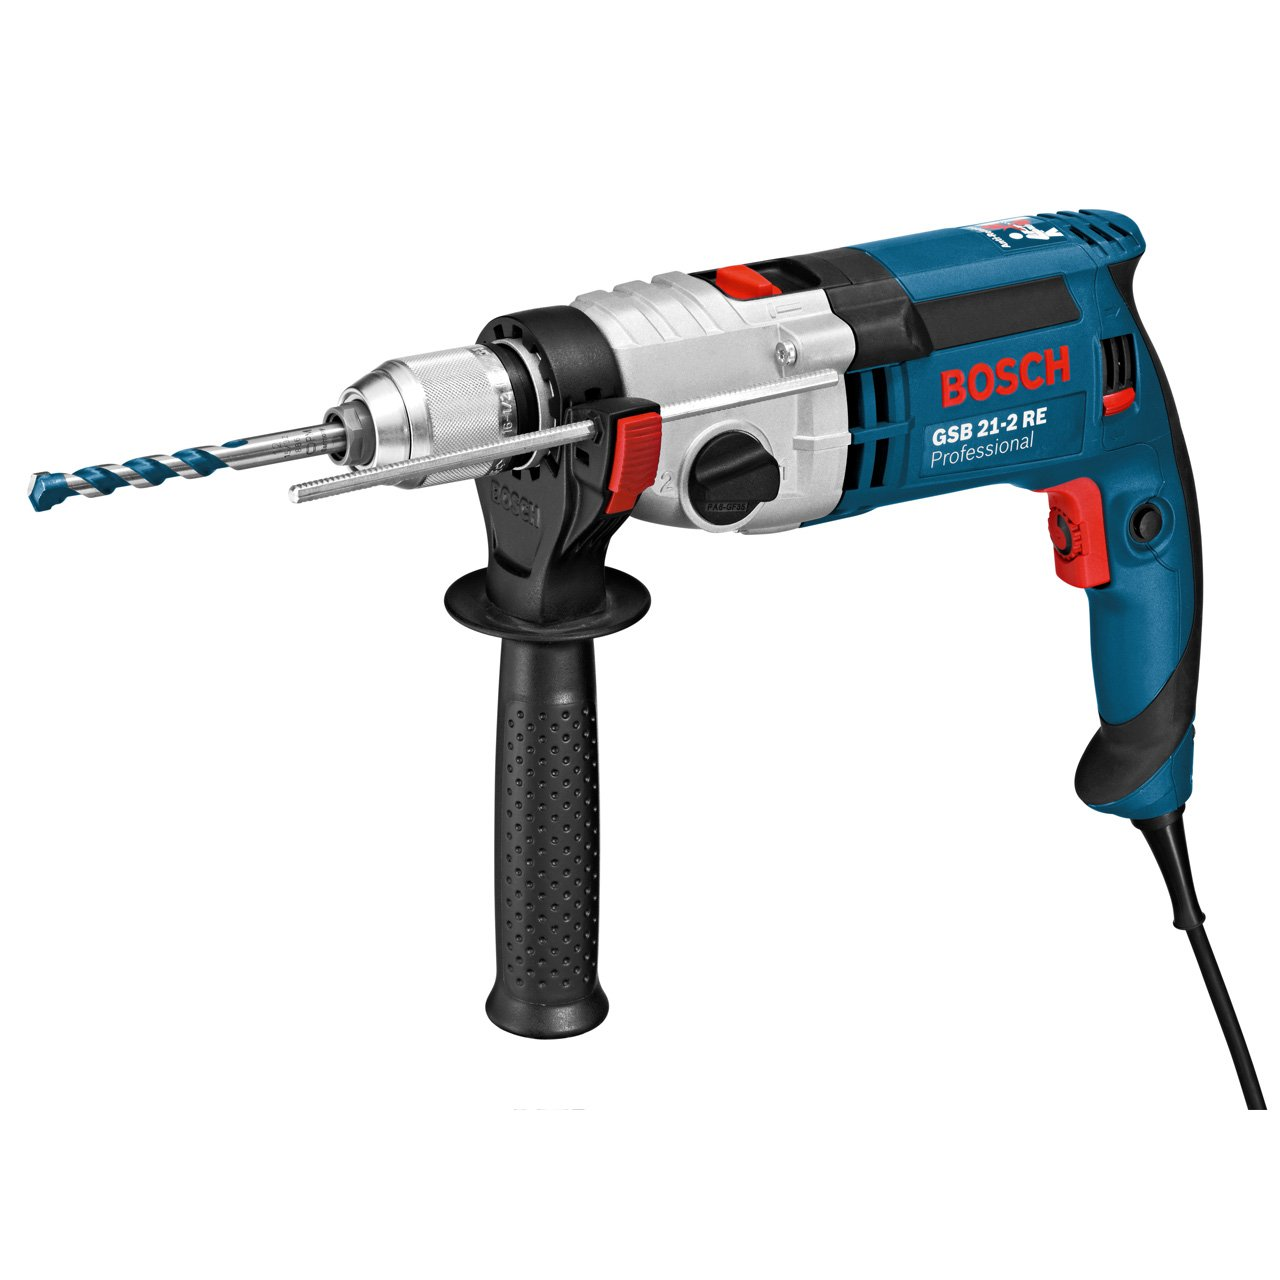 Bosch Professional 060119C500 GSB 21-2 RE Trapano Battente product image